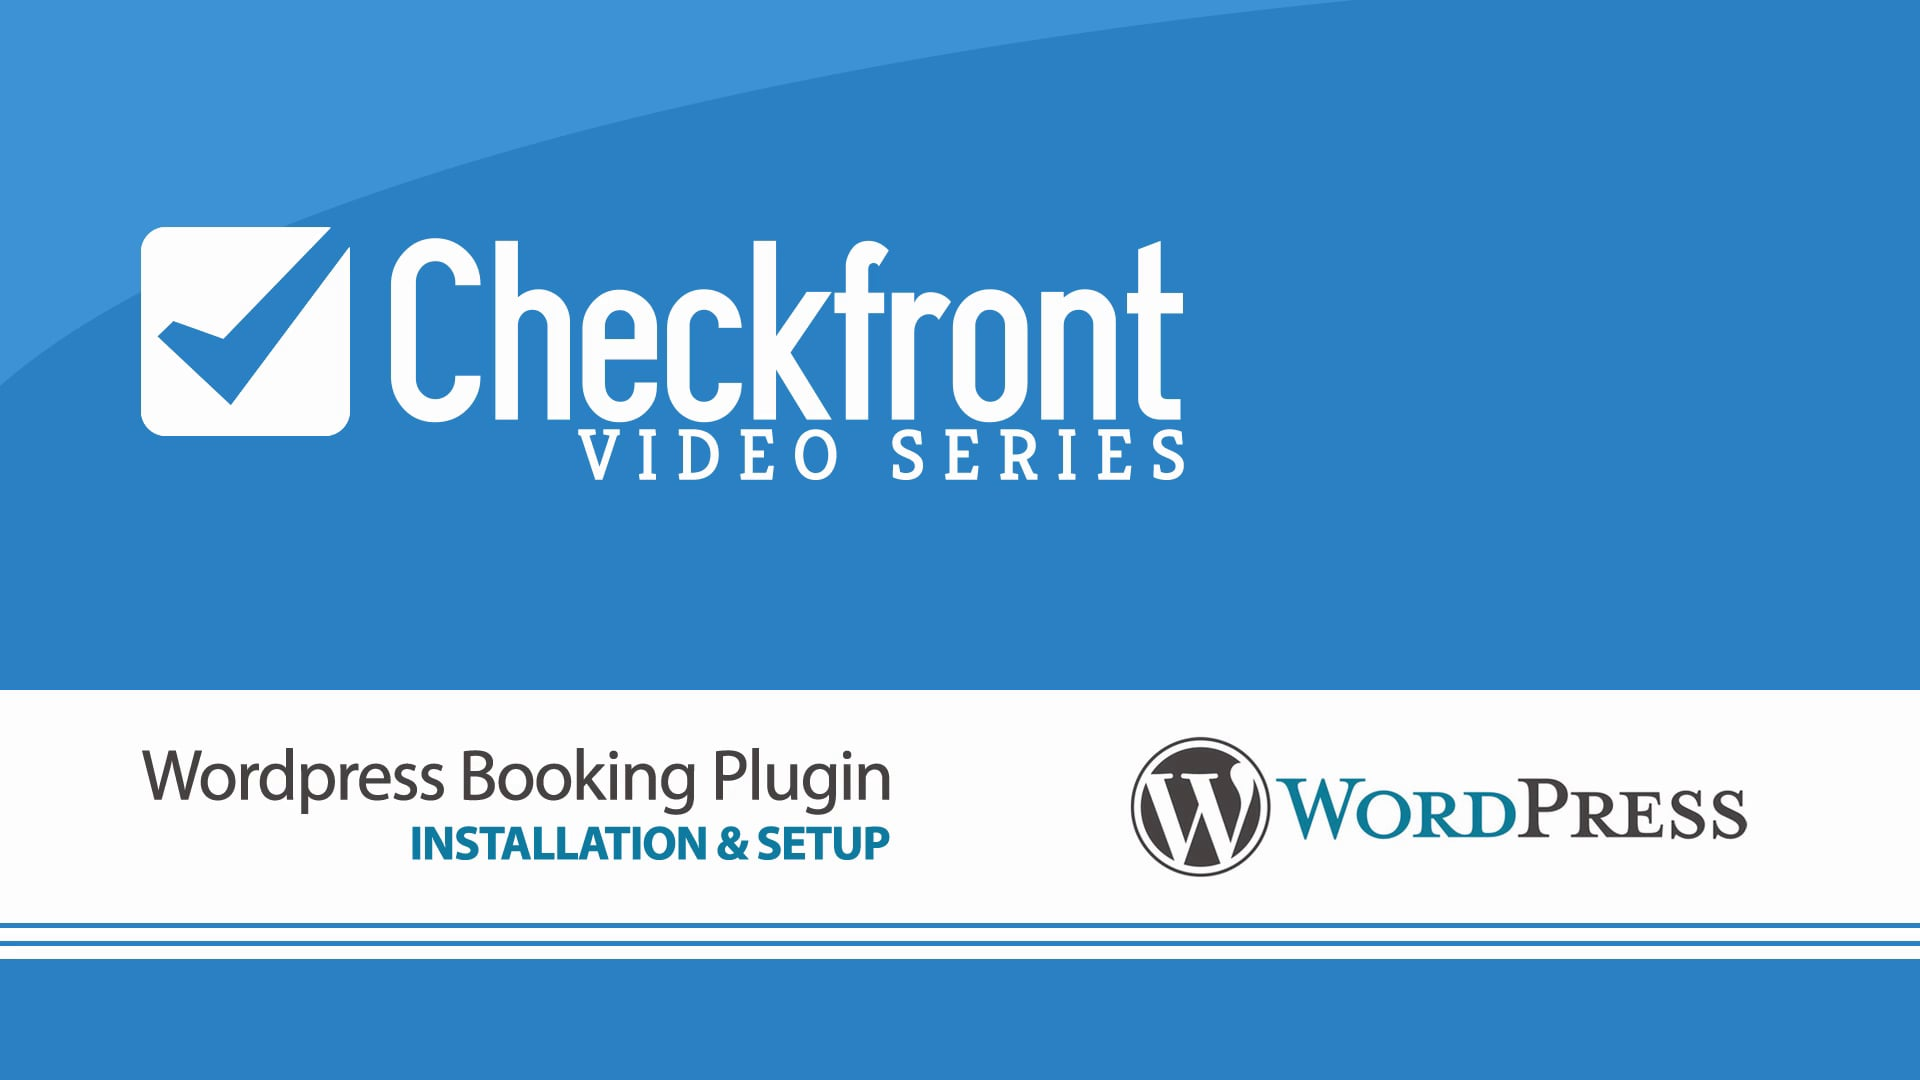 WordPress Booking Plugin for Checkfront